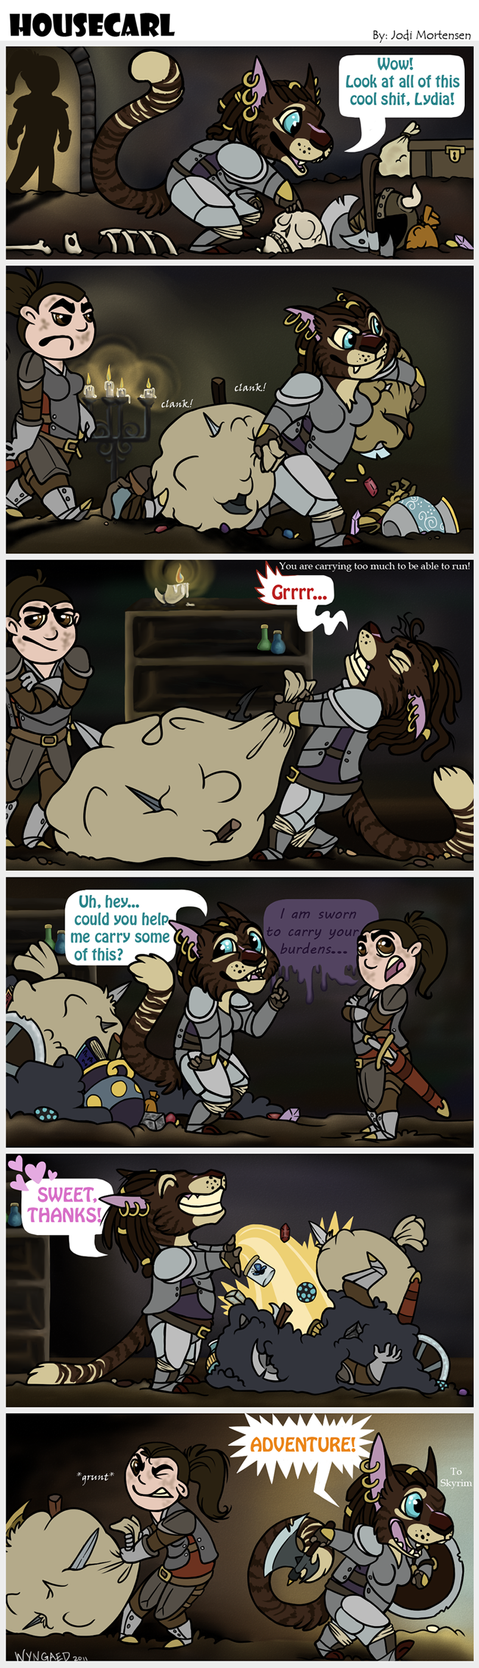 Housecarl - A Skyrim Comic by wyngaed